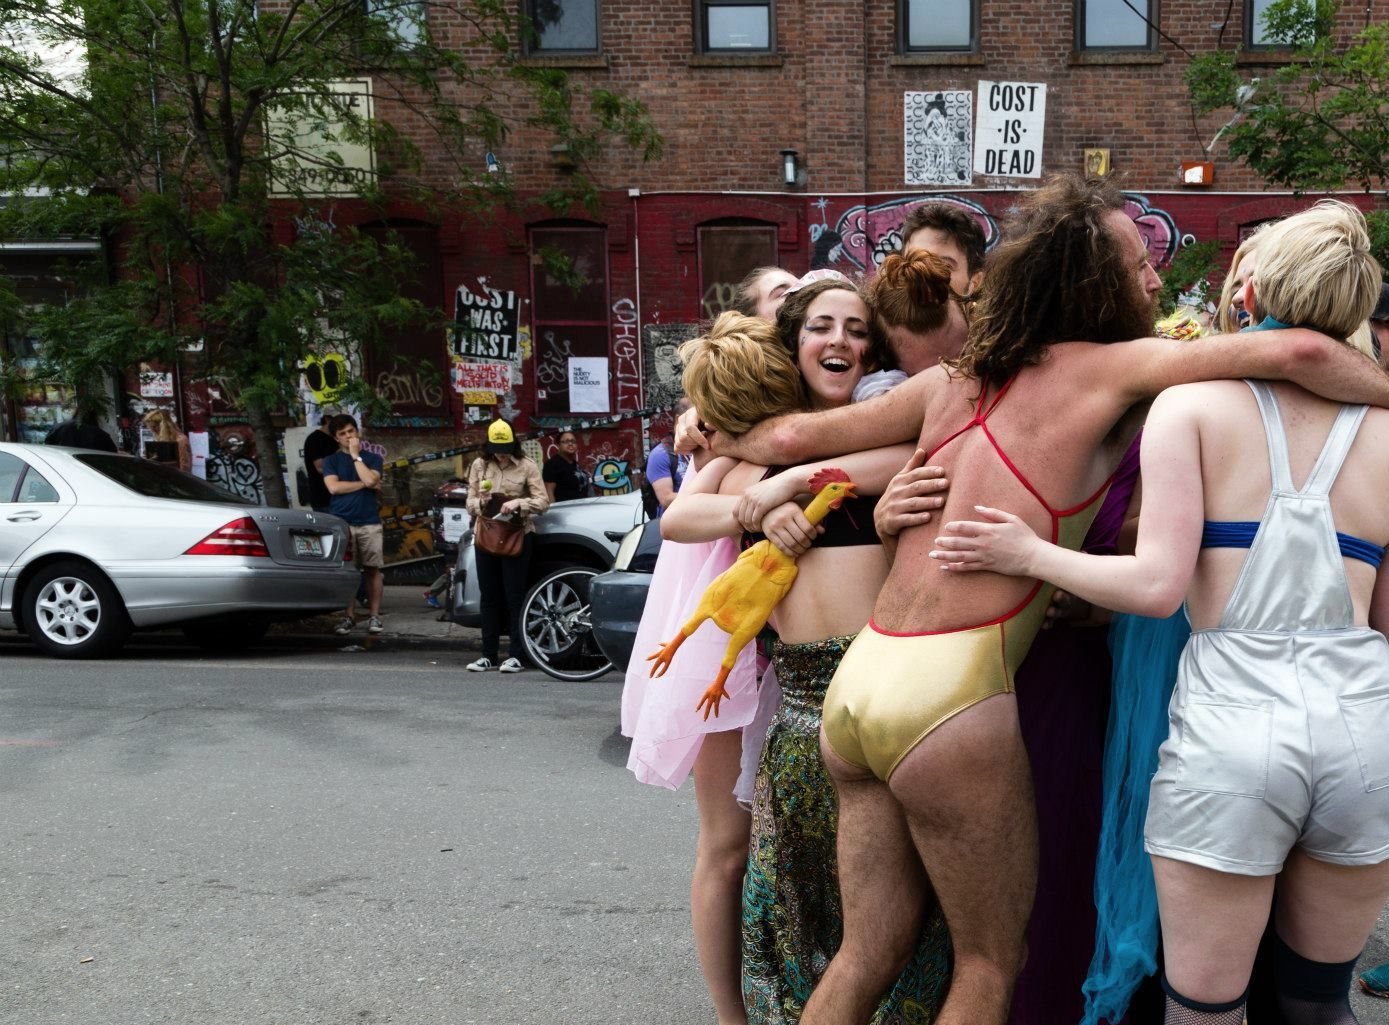 Stephanie Guedalia and friends in a performance piece in Bushwick last year.